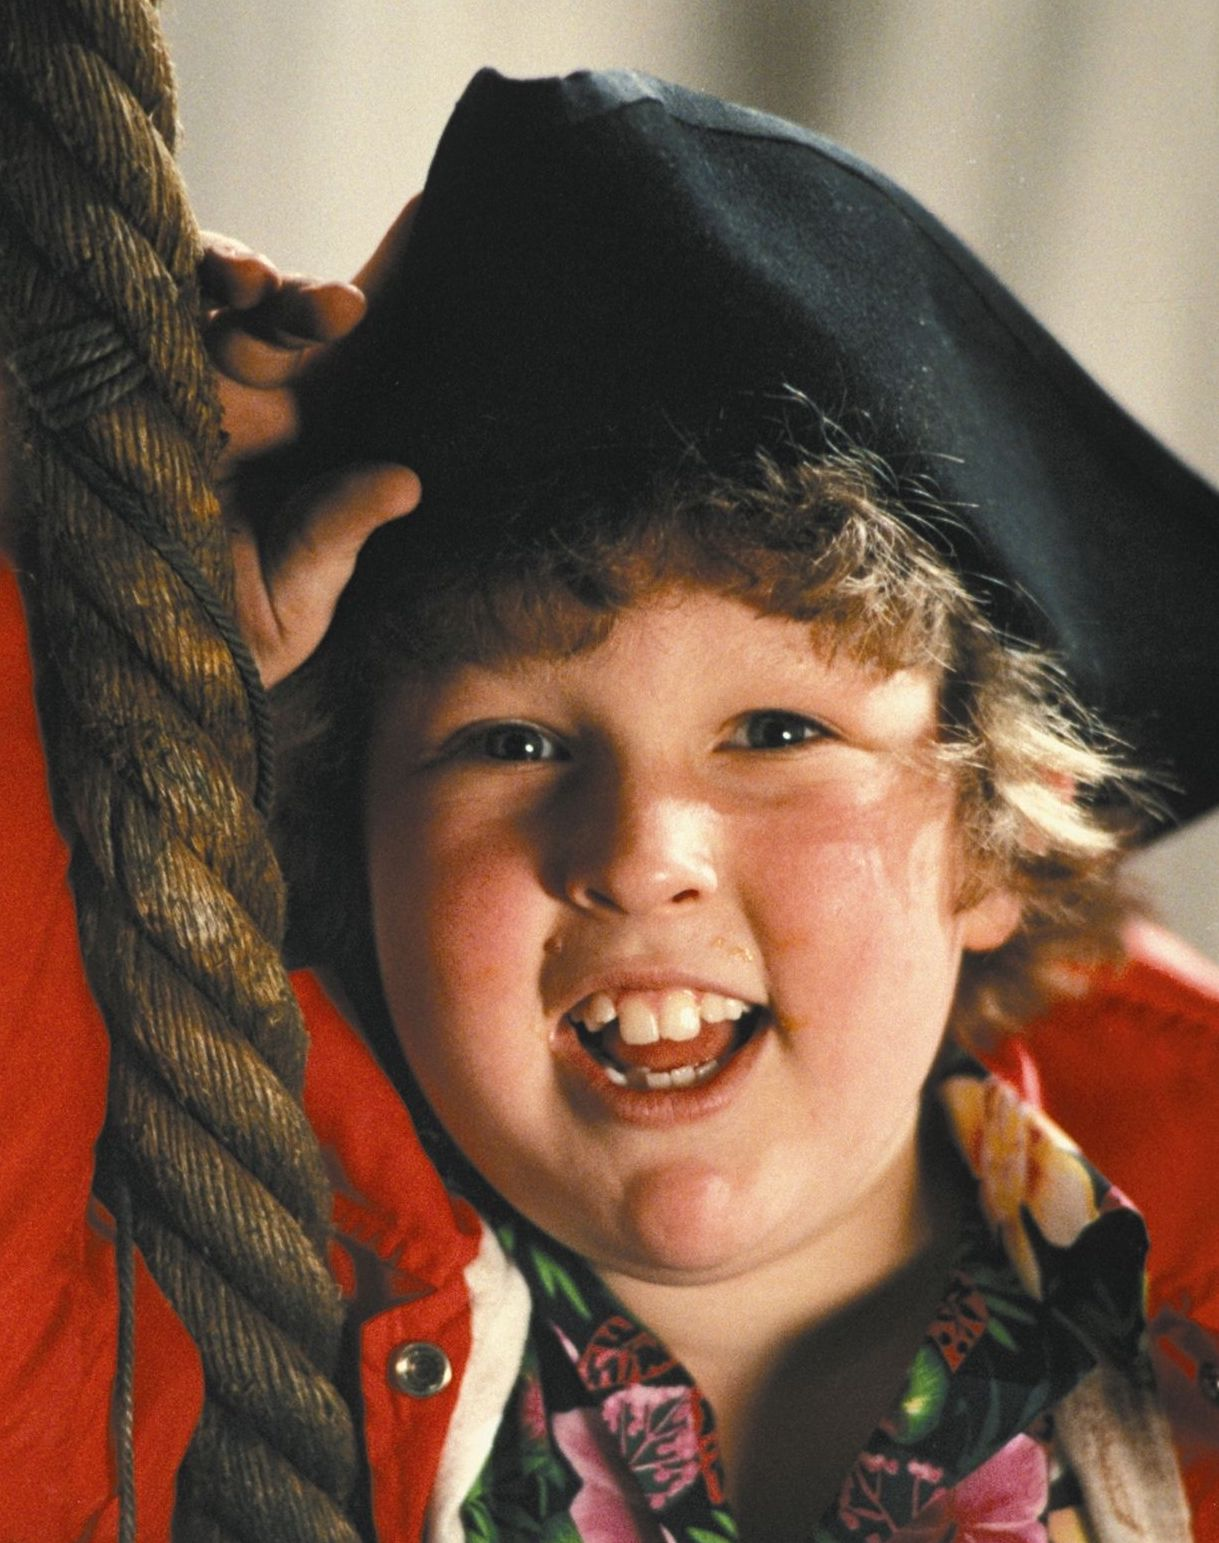 Jeff Cohen as Chunk in The Goonies (1985)